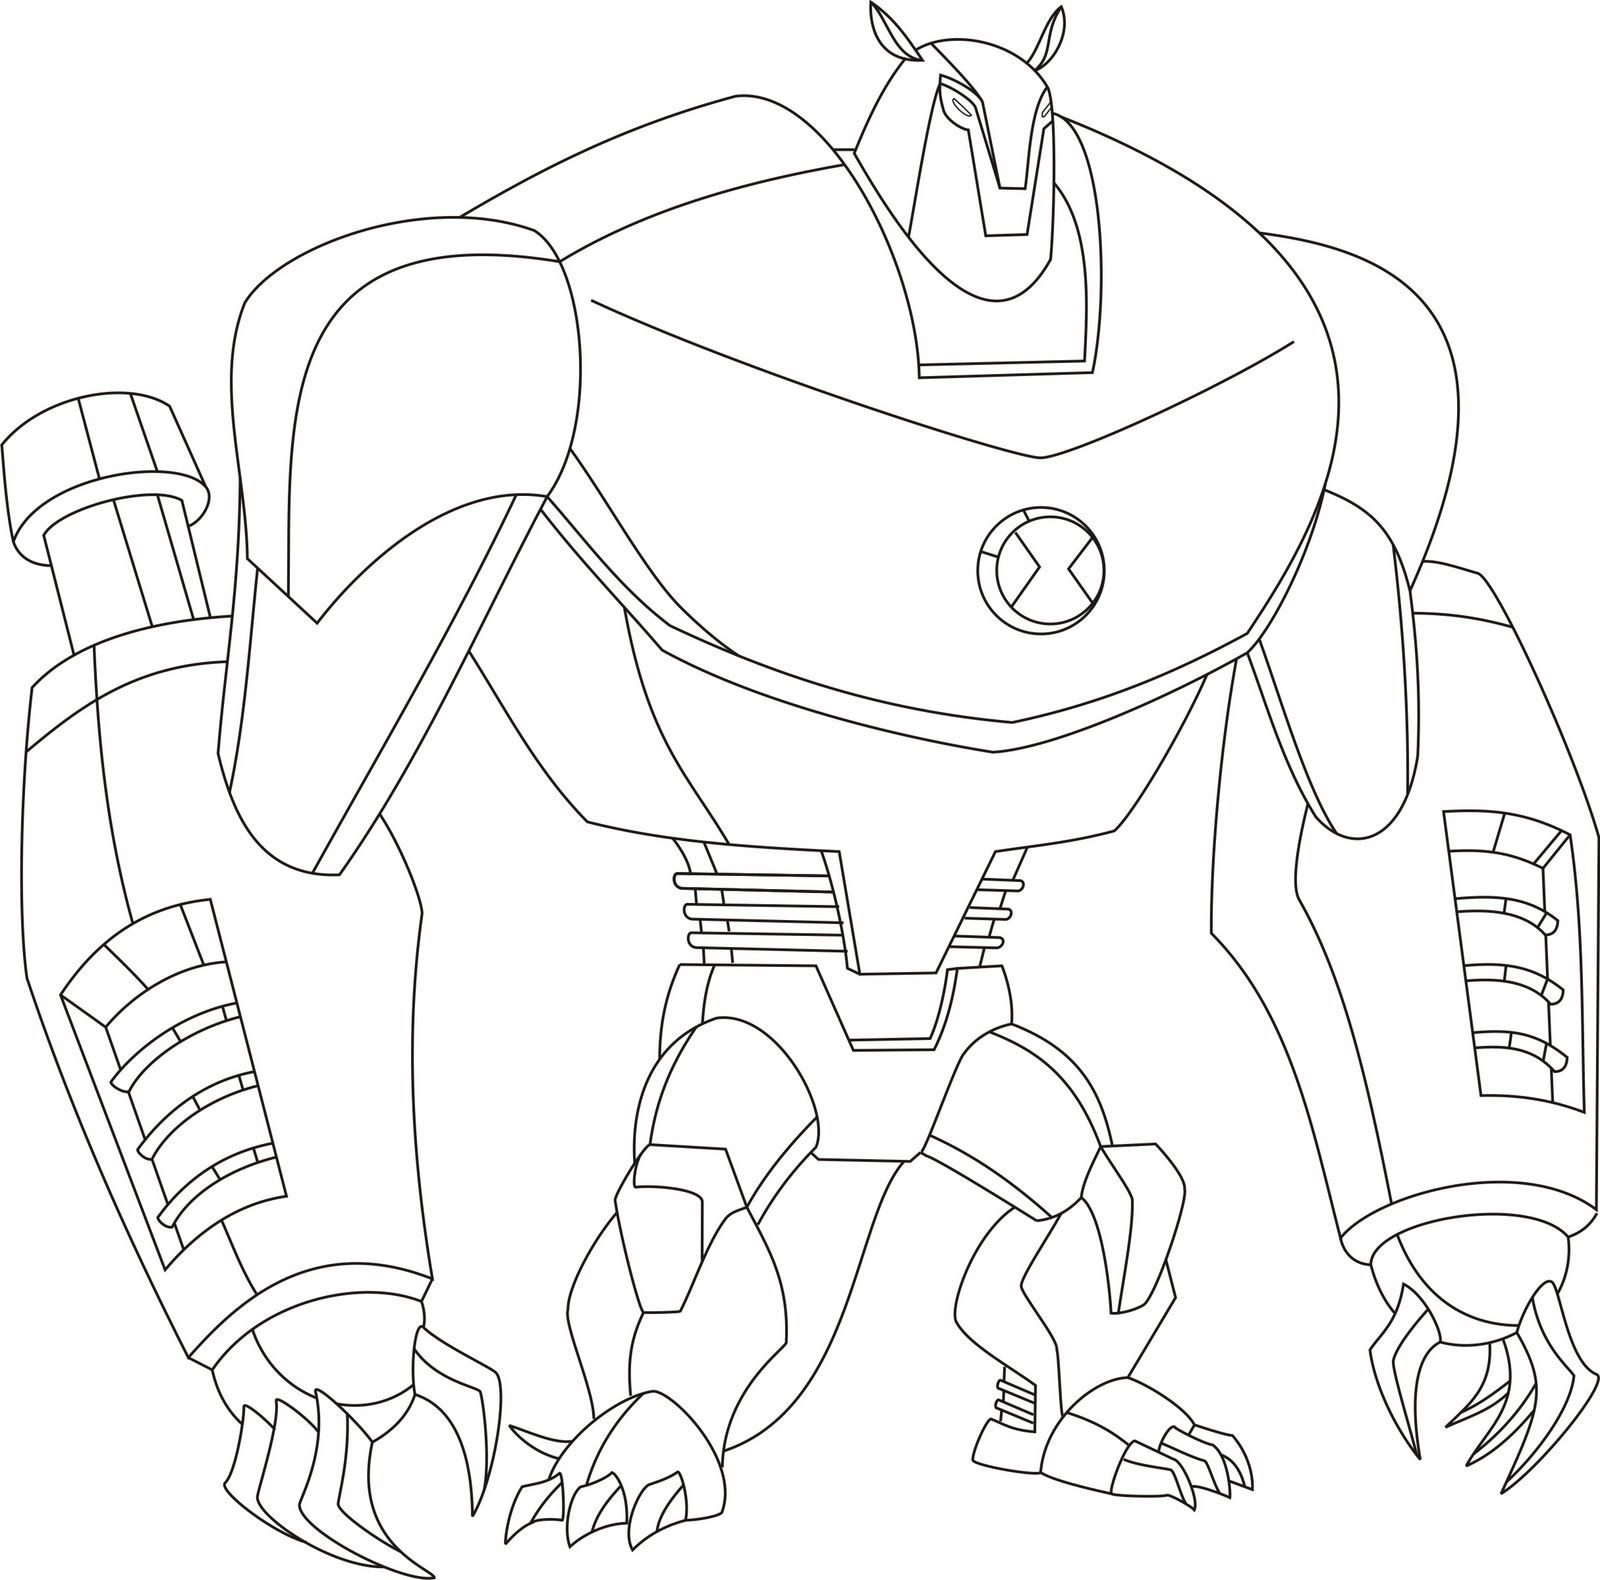 Download Or Print This Amazing Coloring Page Ben 10 Water Hazard Coloring Pages Sketch Coloring Star Wars Coloring Book Cartoon Coloring Pages Coloring Pages